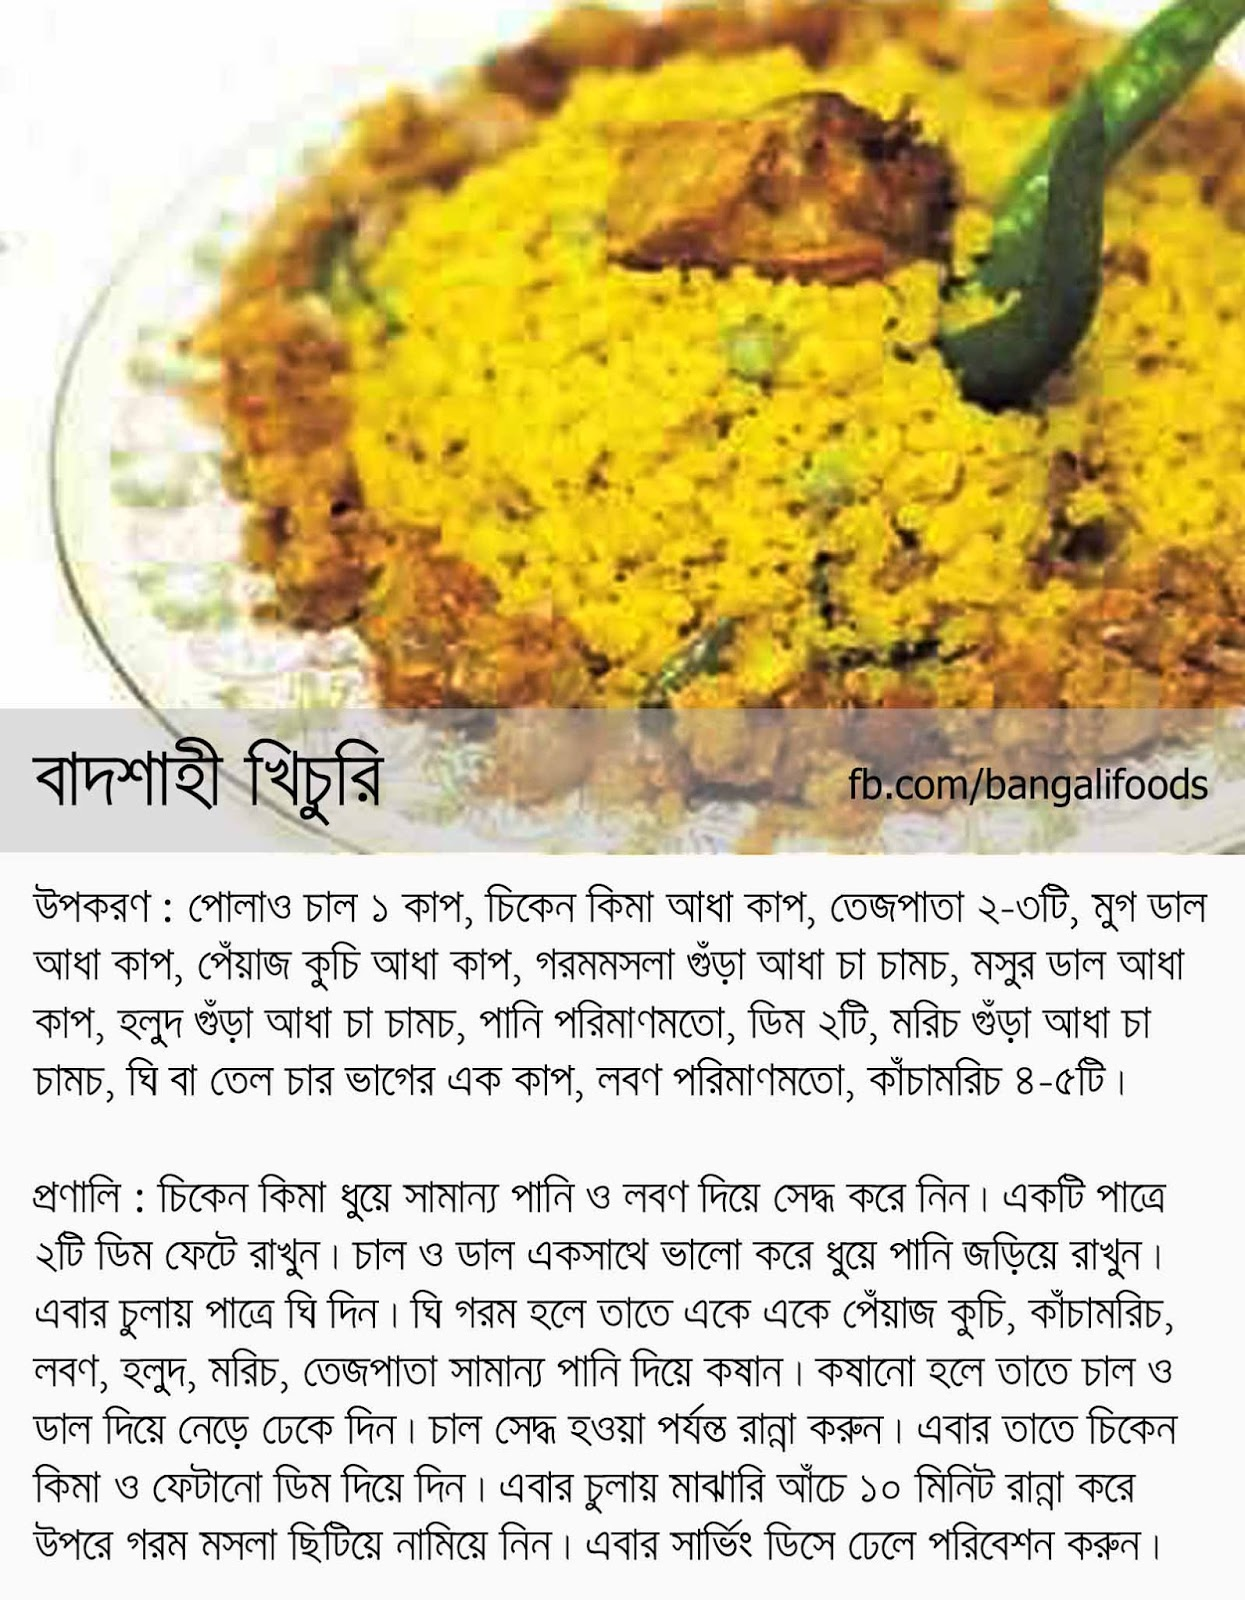 Bangali foods some khichuri recipes in bangla badshahi khichuri khichuri eaten by king forumfinder